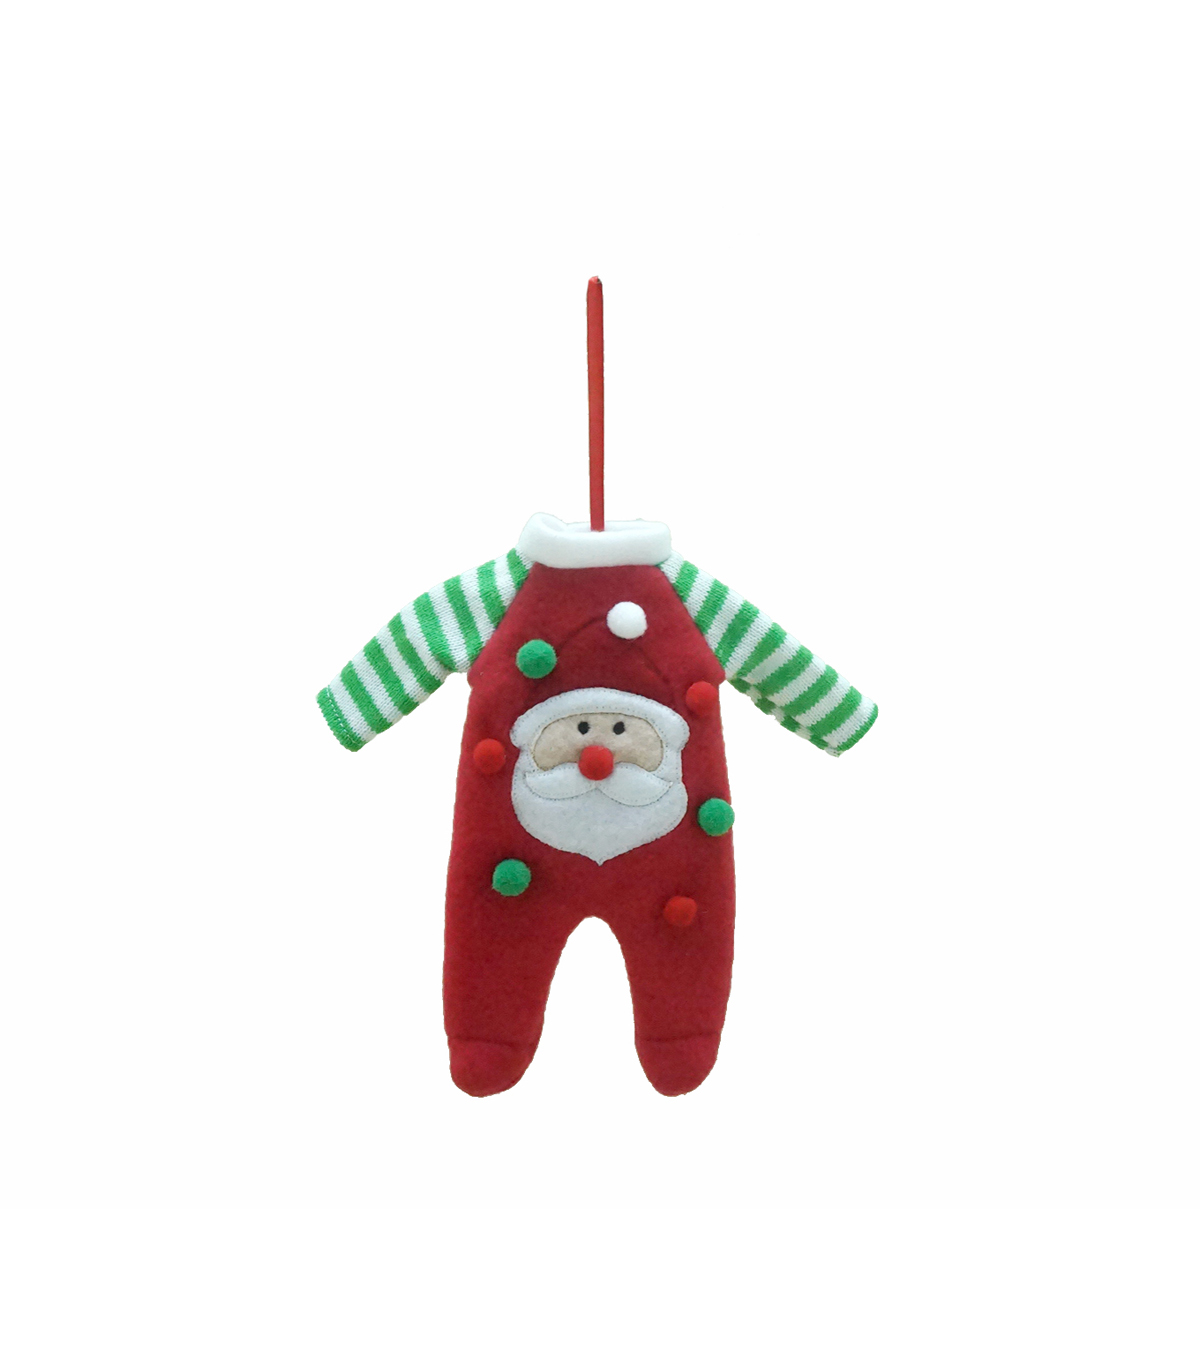 Maker\u0027s Holiday Christmas Whimsy Workshop Santa Jammies Ornament